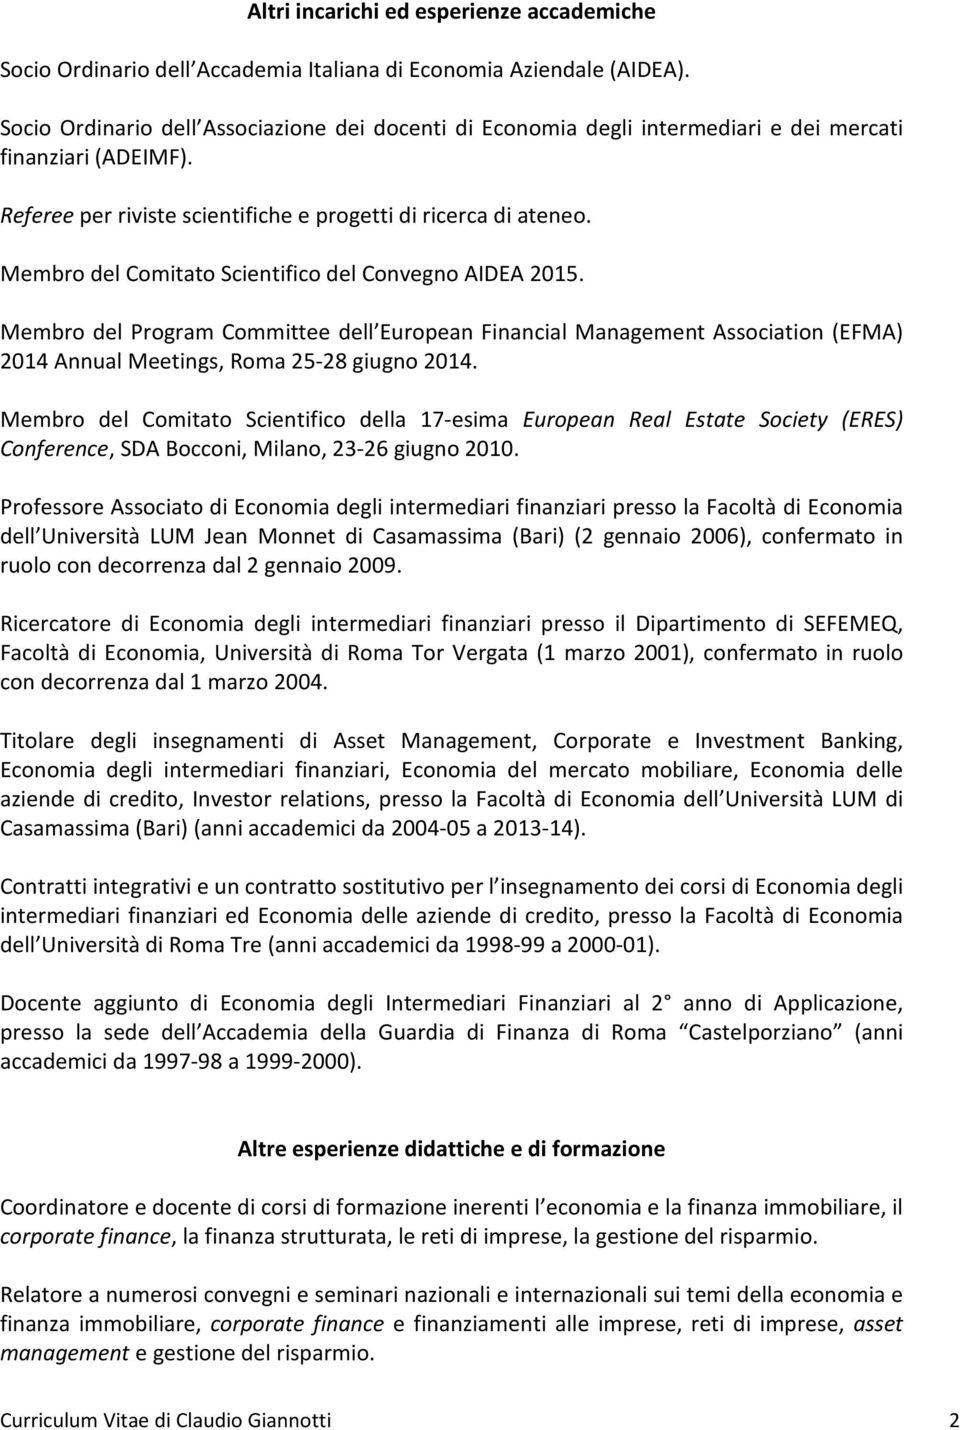 Membro del Comitato Scientifico del Convegno AIDEA 2015. Membro del Program Committee dell European Financial Management Association (EFMA) 2014 Annual Meetings, Roma 25-28 giugno 2014.